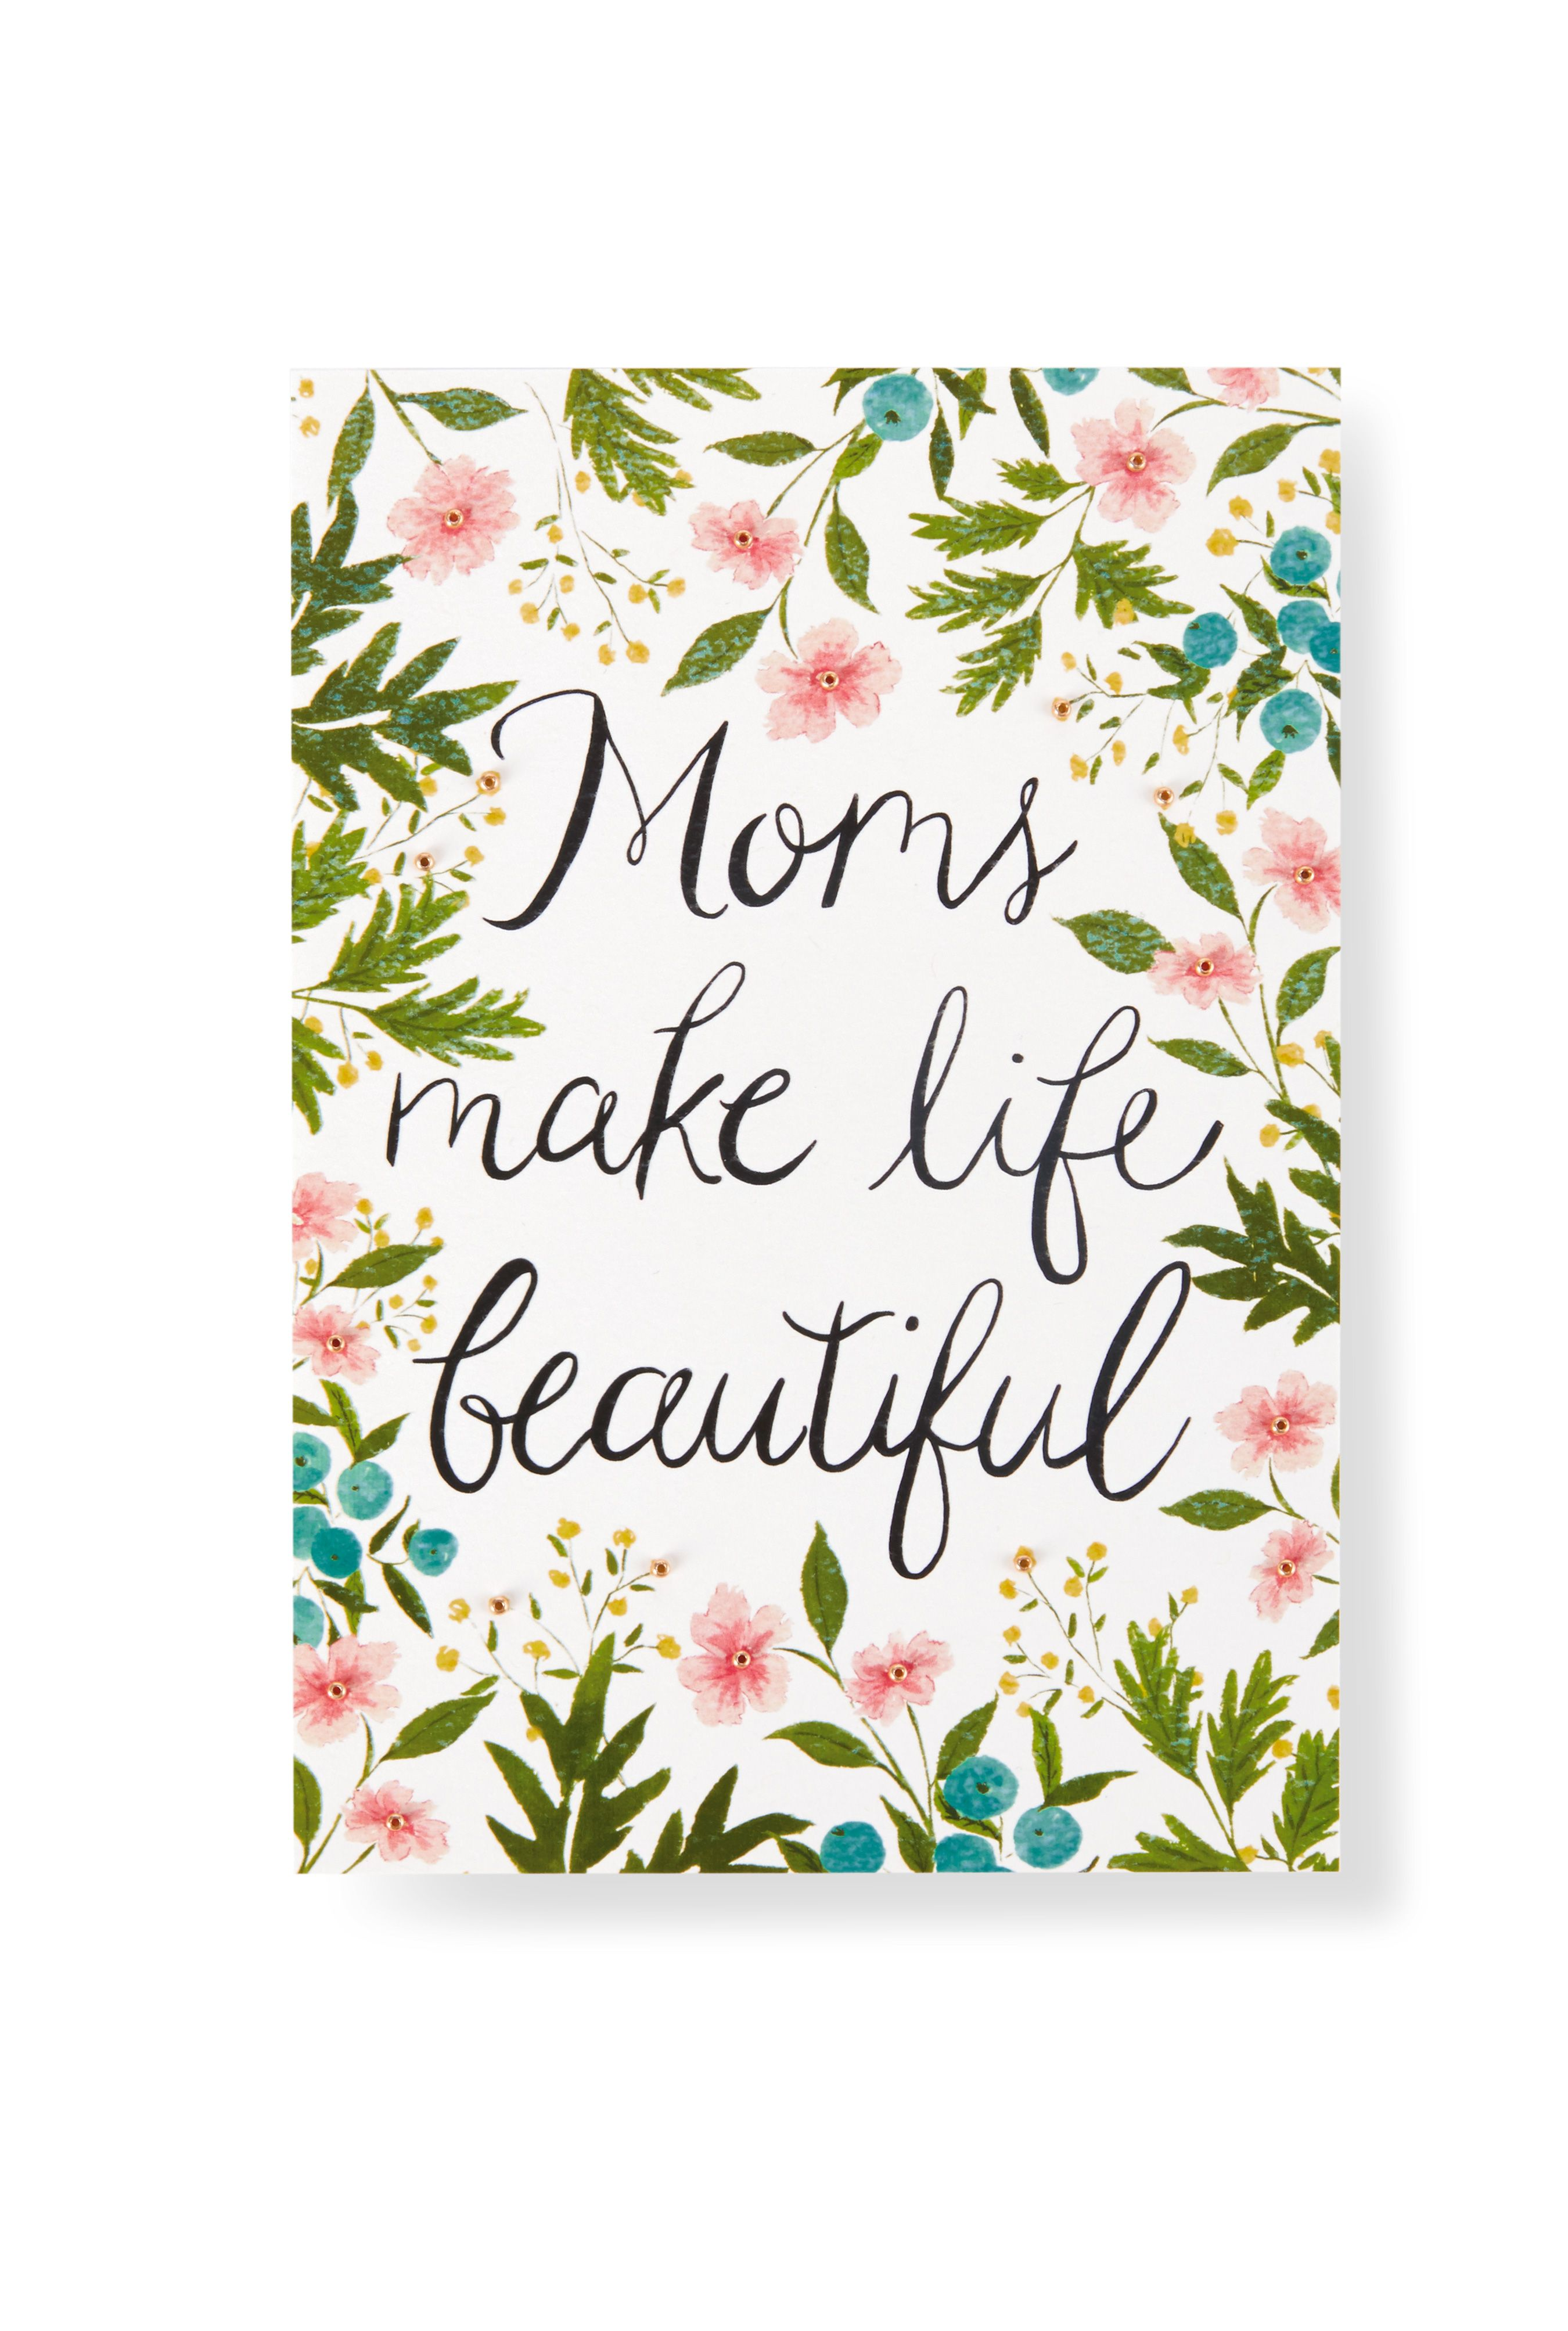 Amazing Show Mom How Much You Care With This Pretty Floral Inspired Motheru0027s Day  Card From Hallmark Gold Crown.